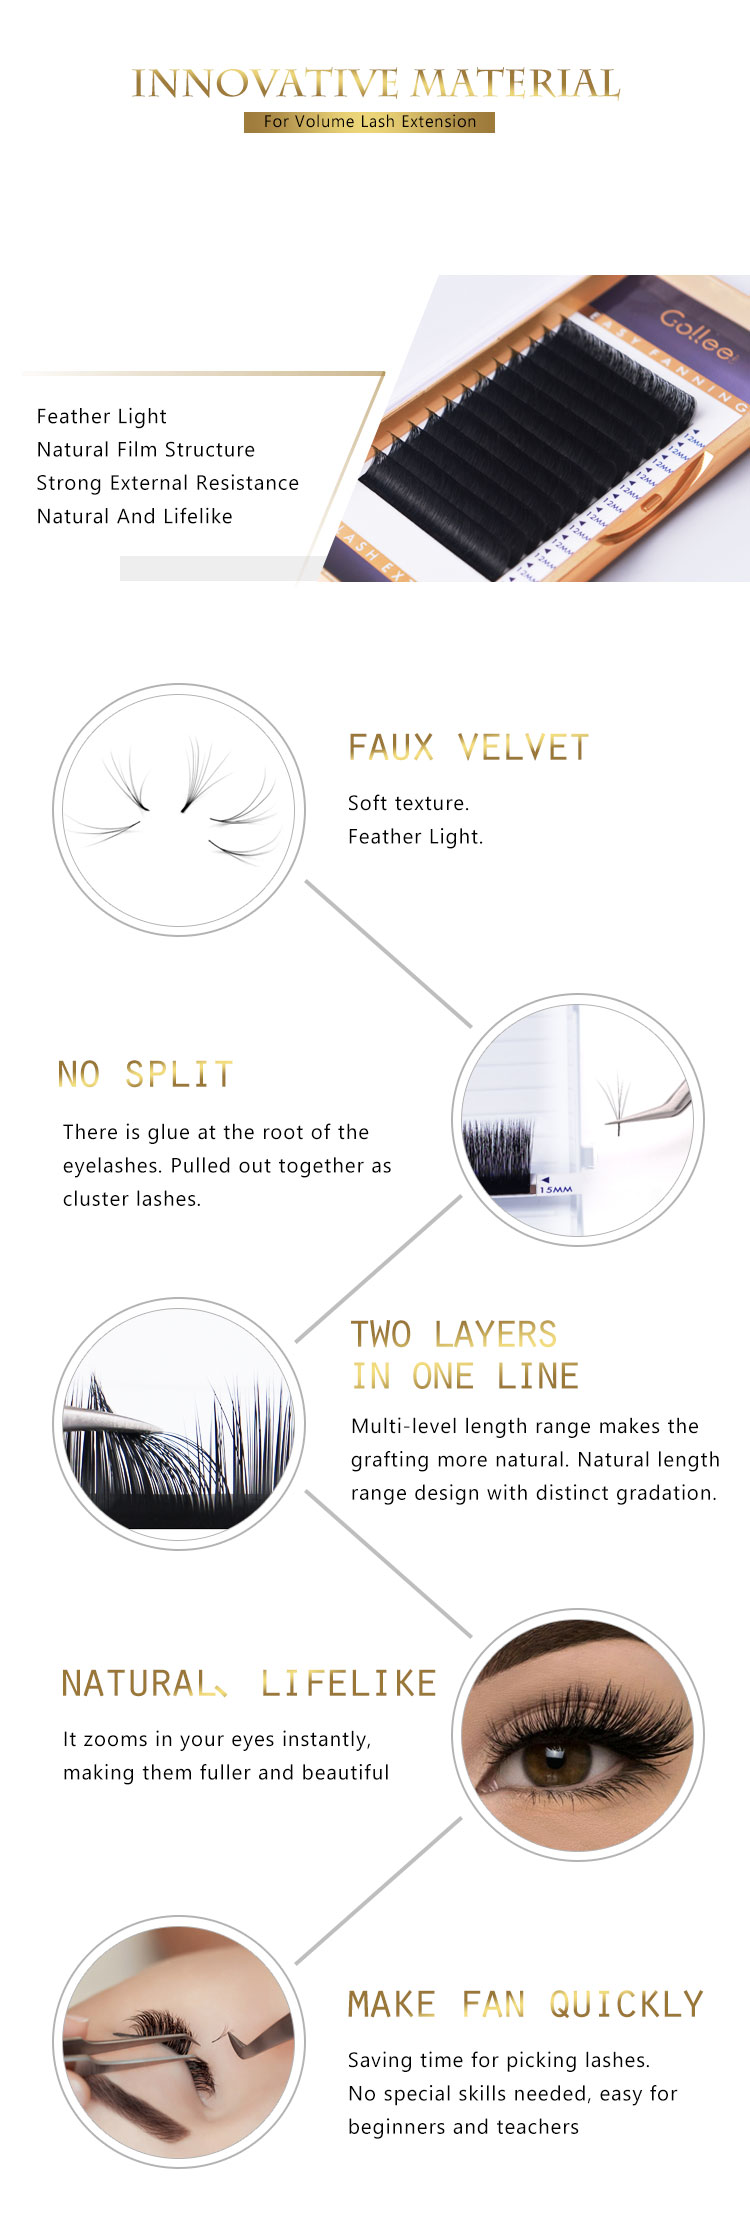 Gollee 100% C Curl One Touch Fan One Second Making Fans Easy Blooming  Velvet Volume Buy Mink Cluster Mixed Eyelash Extensions, View Gollee 100% C  Curl